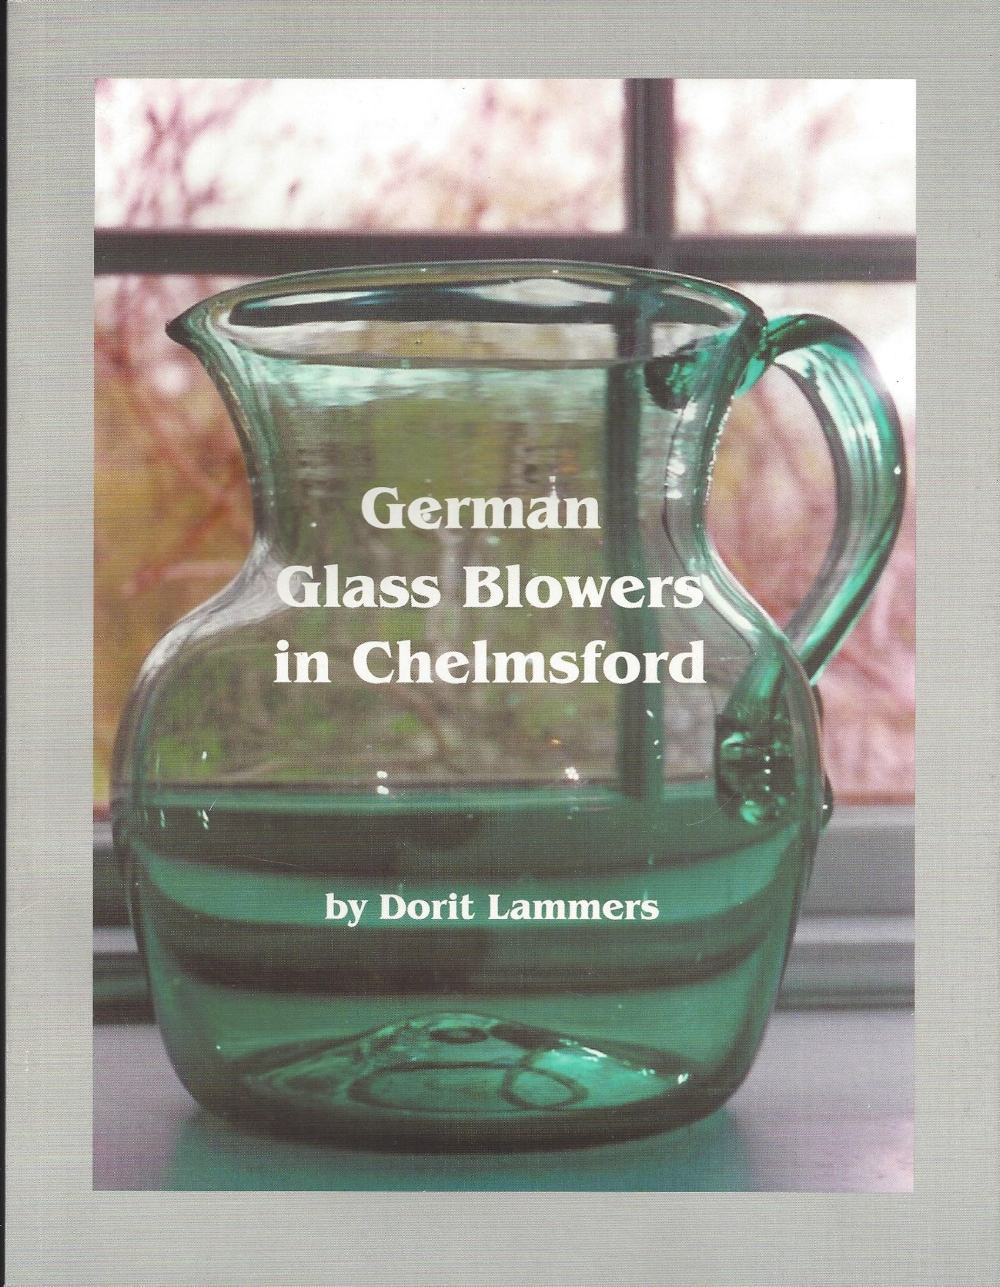 German Glass Blowers in Chelmsford (Book), Lammers $20